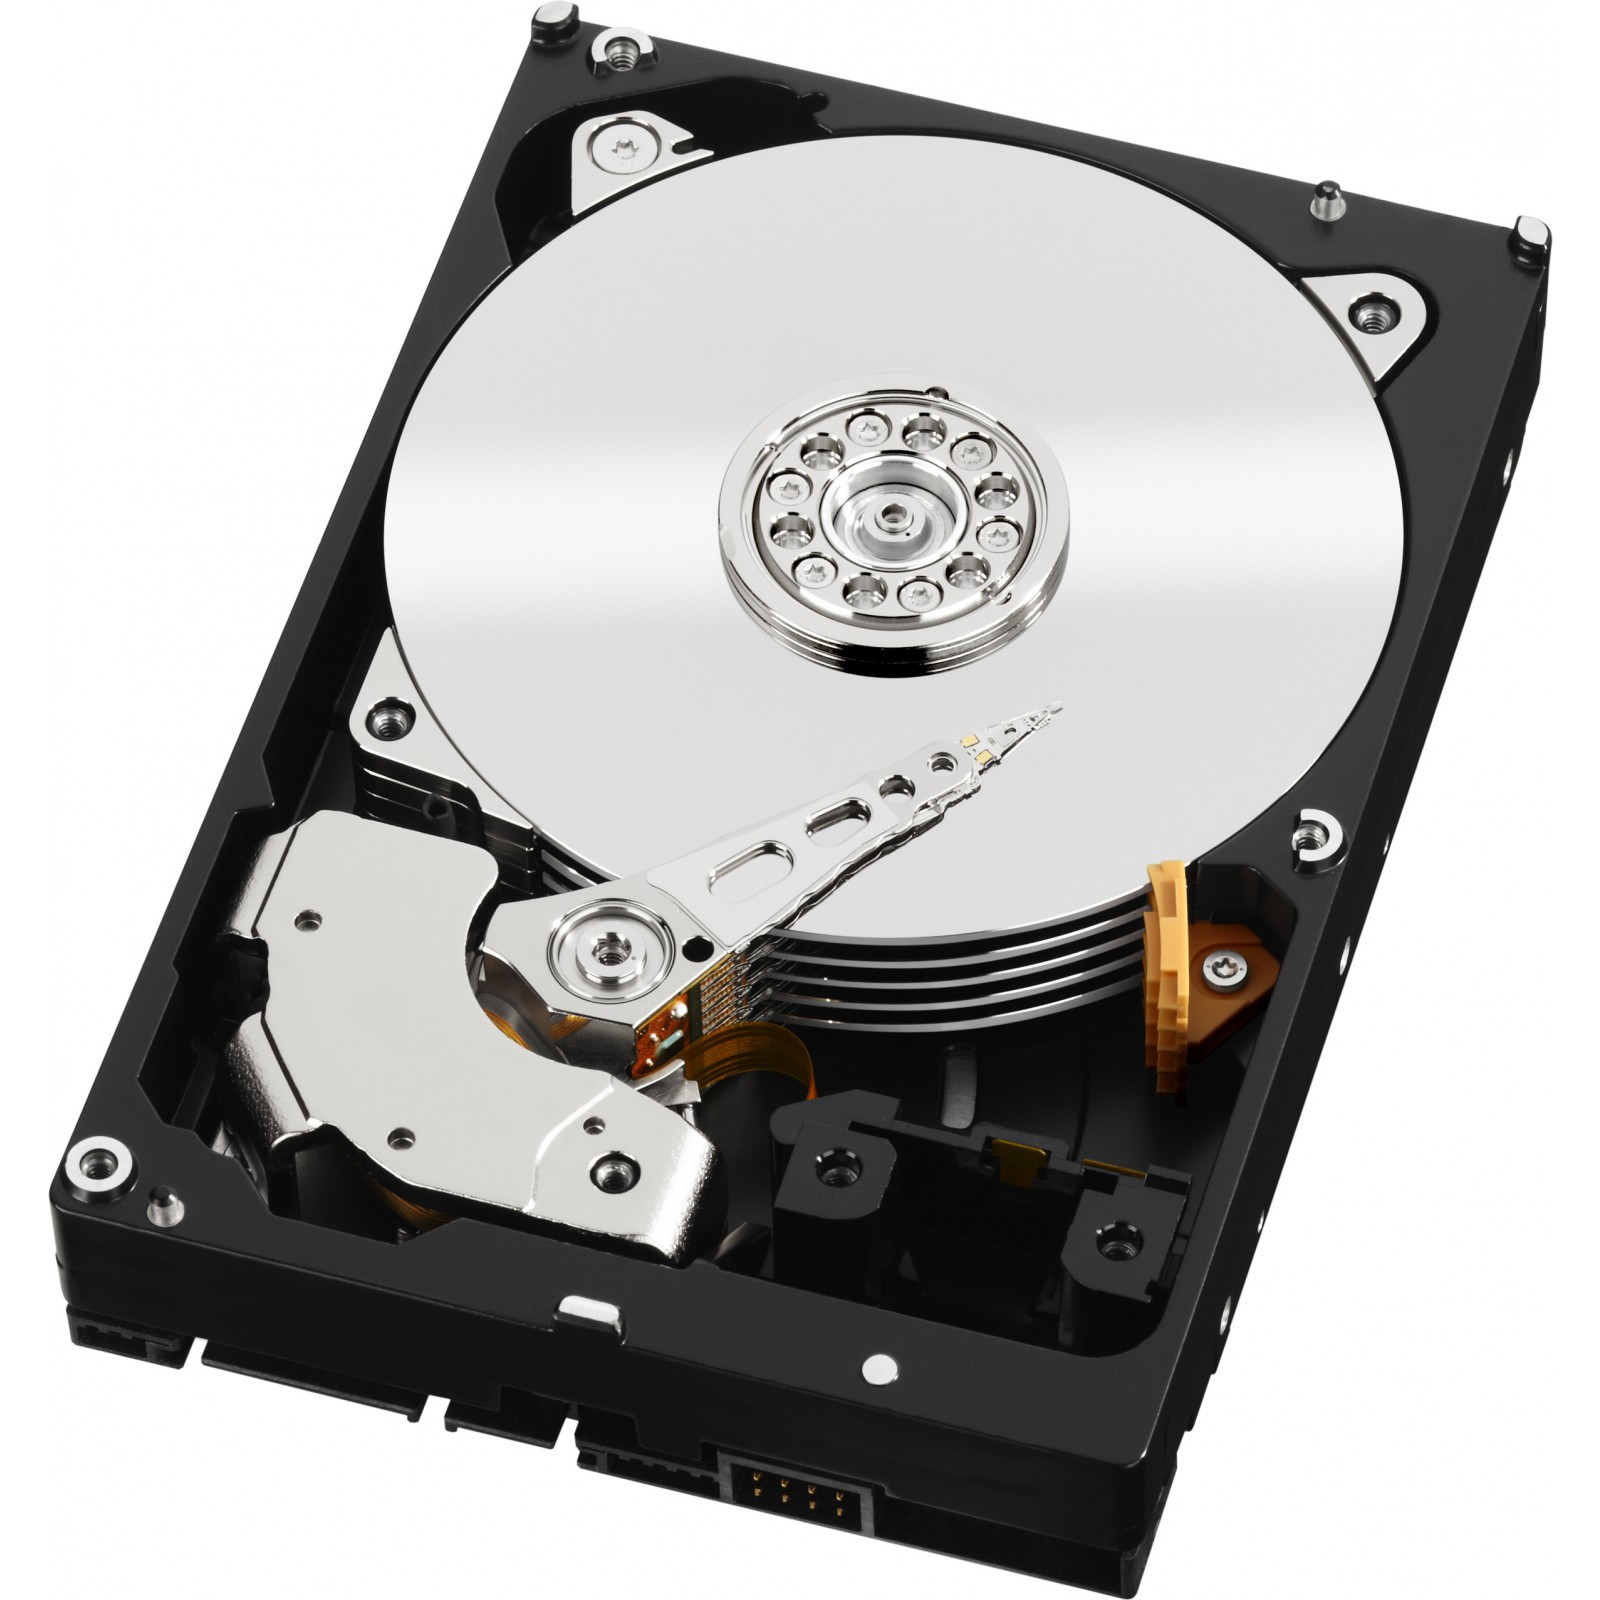 WESTERN DIGITAL RE3 1TB 1024GB SERIAL ATA II INTERNAL HARD DRIVE REFURBISHED